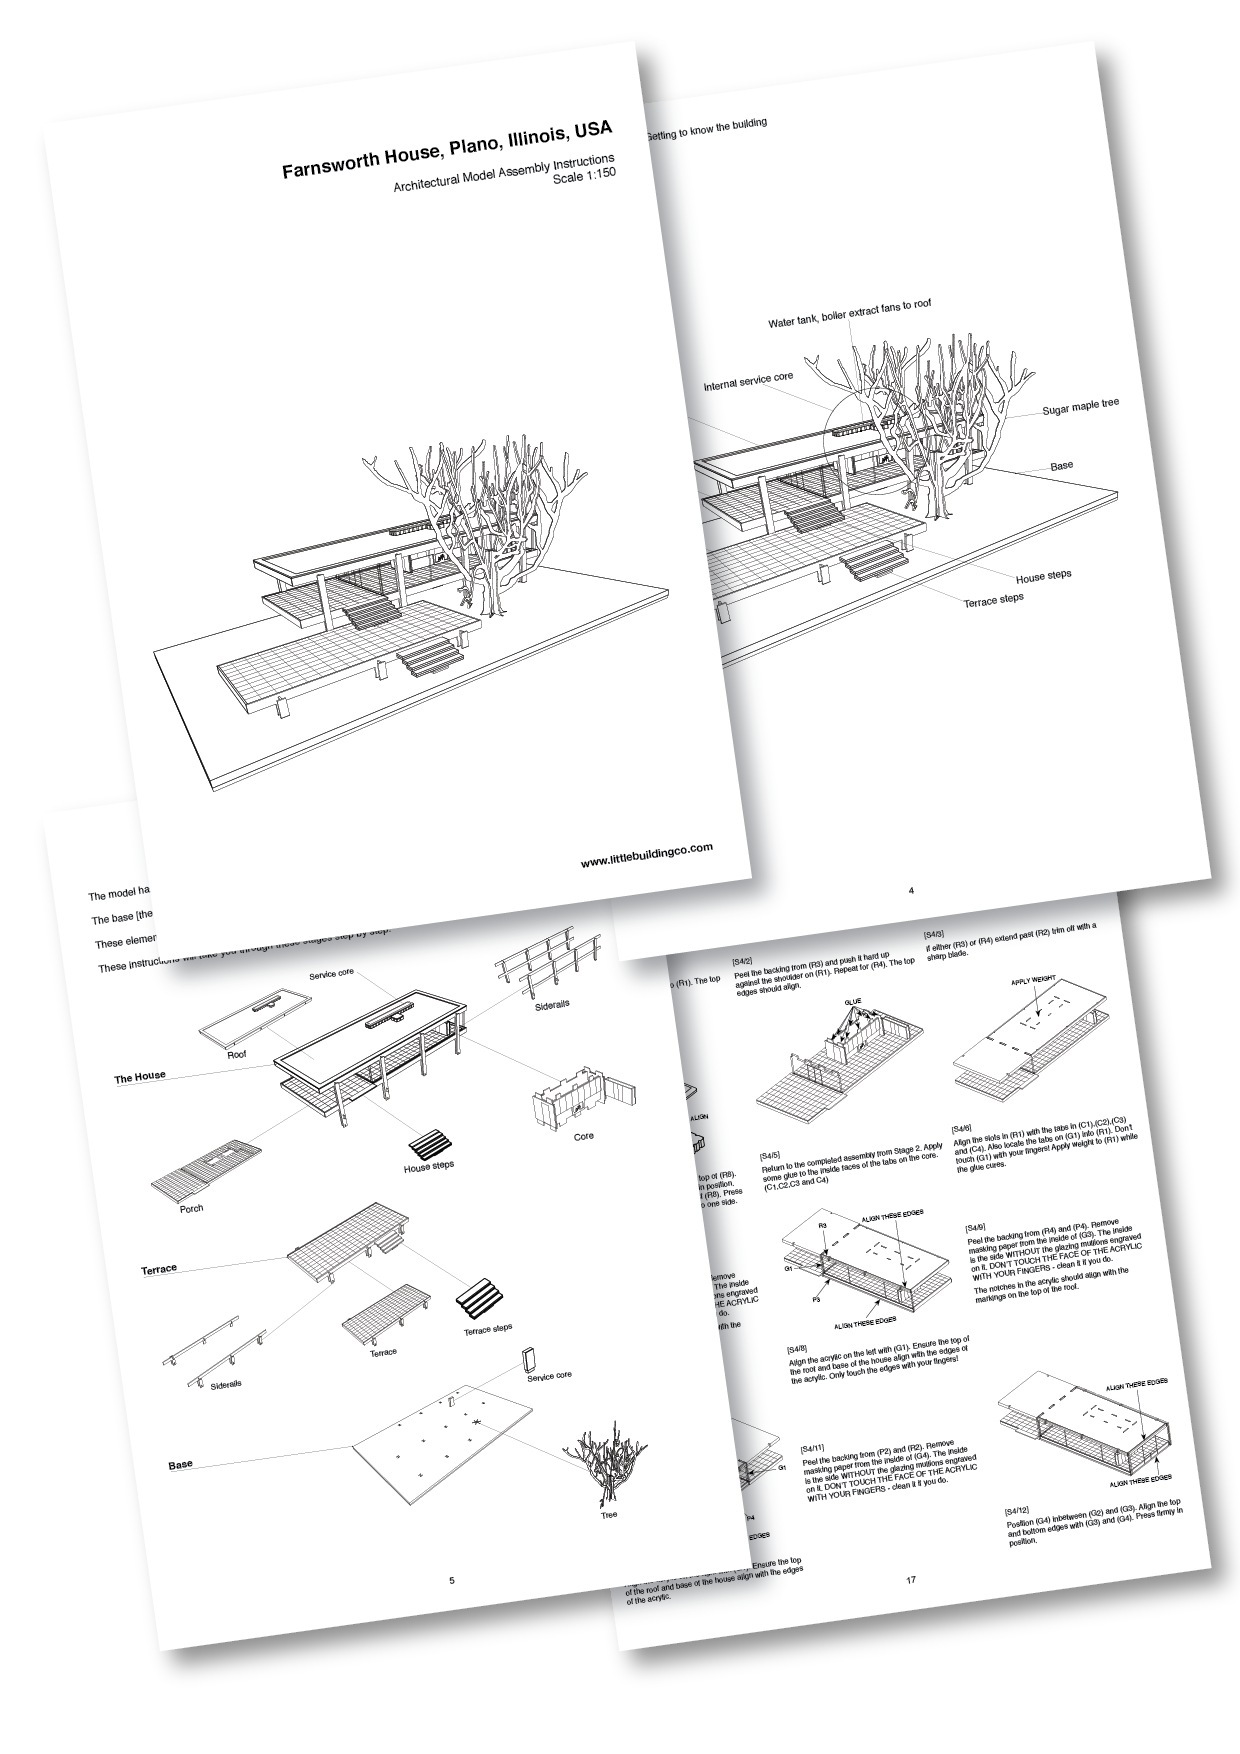 Farnsworth House assembly instructions